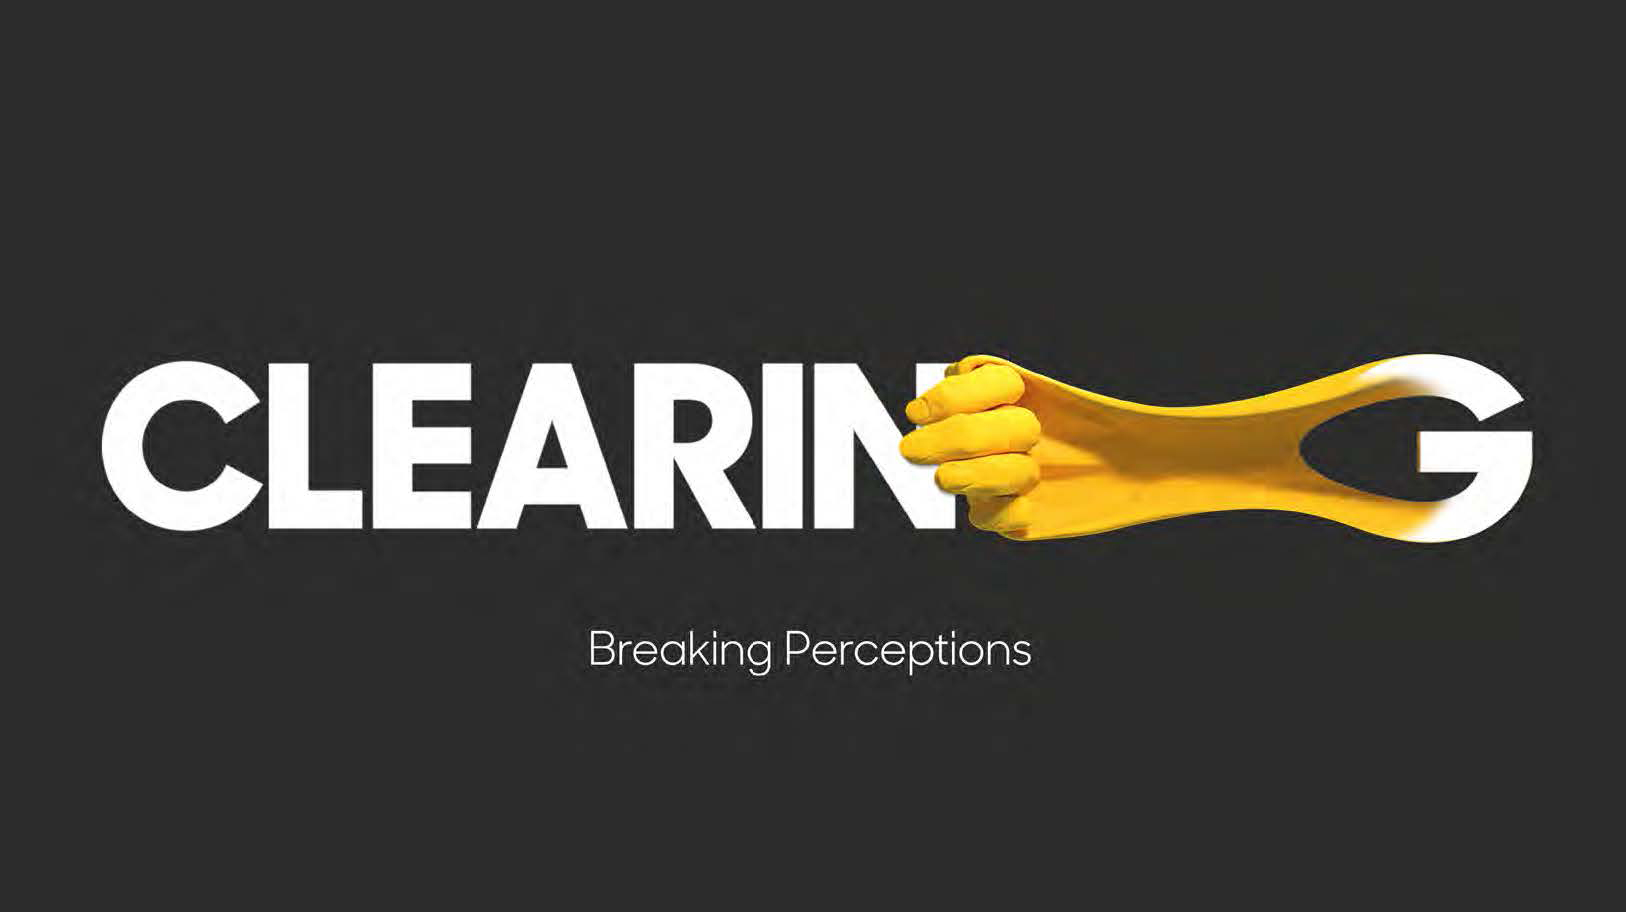 Clearing banner reading 'Breaking Perceptions'